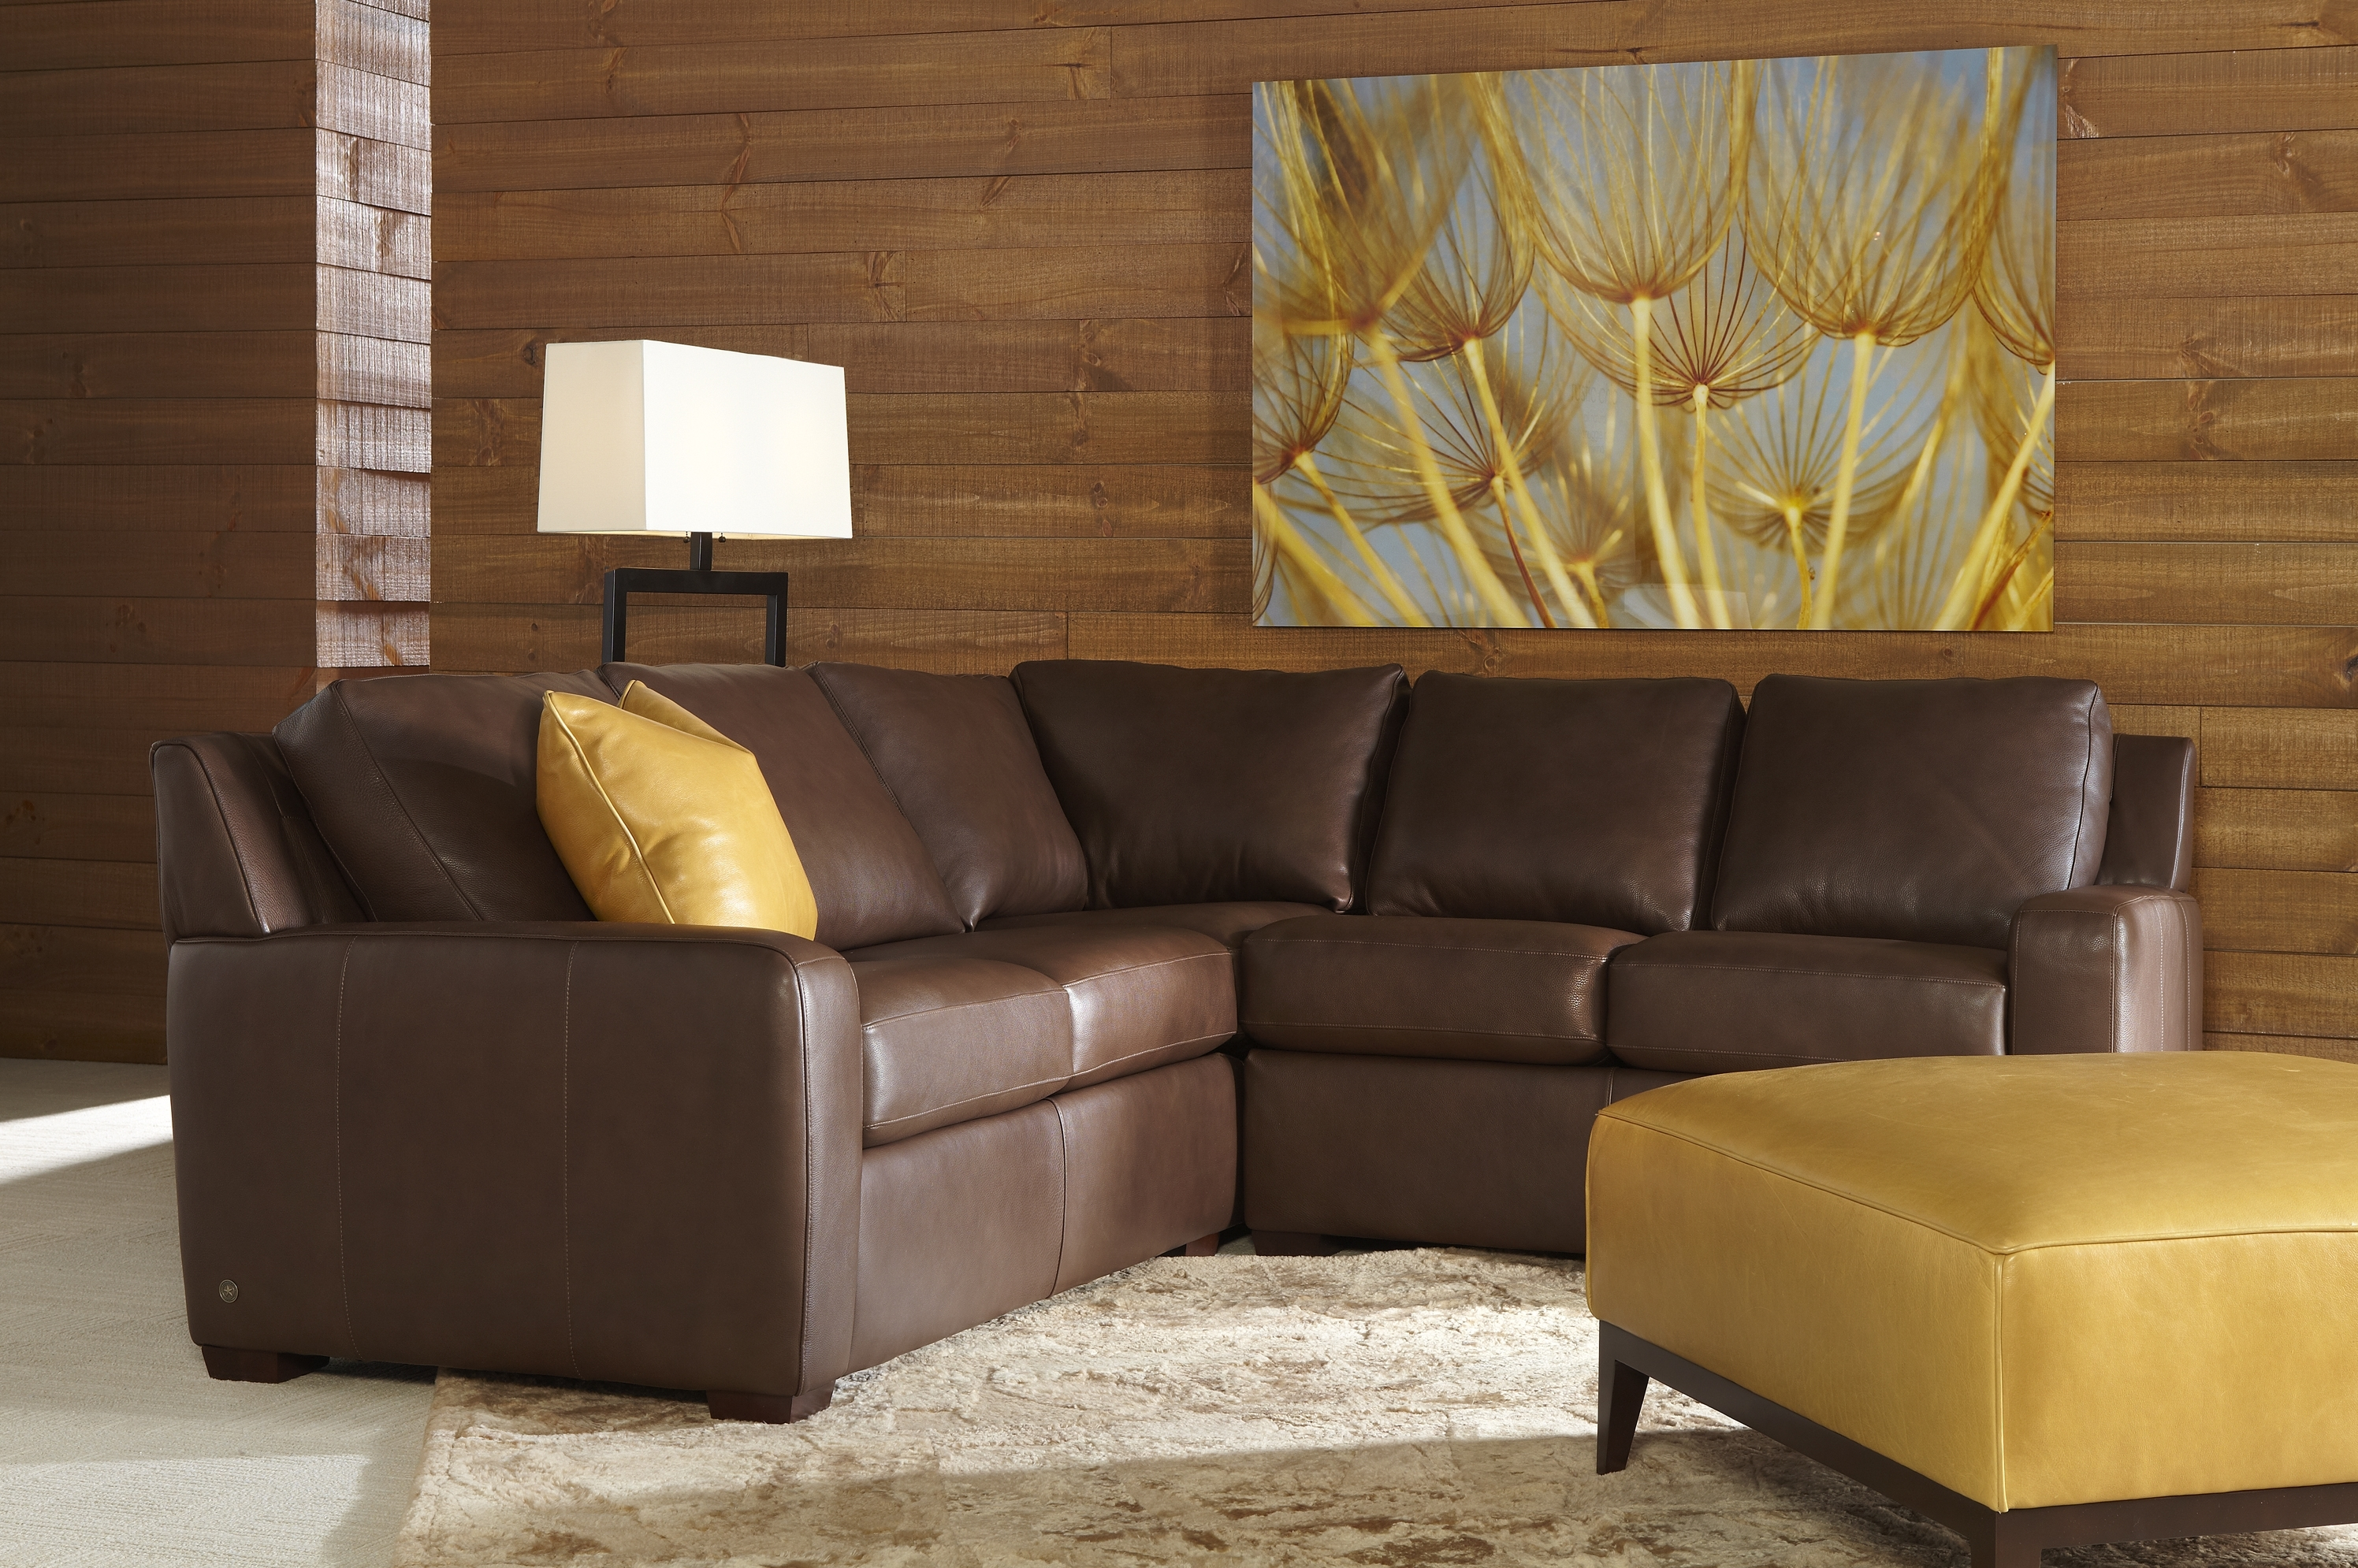 Trendy Sectional Sofas – Elegance And Style Tailored Just For Youand Inside Made In Usa Sectional Sofas (View 5 of 15)